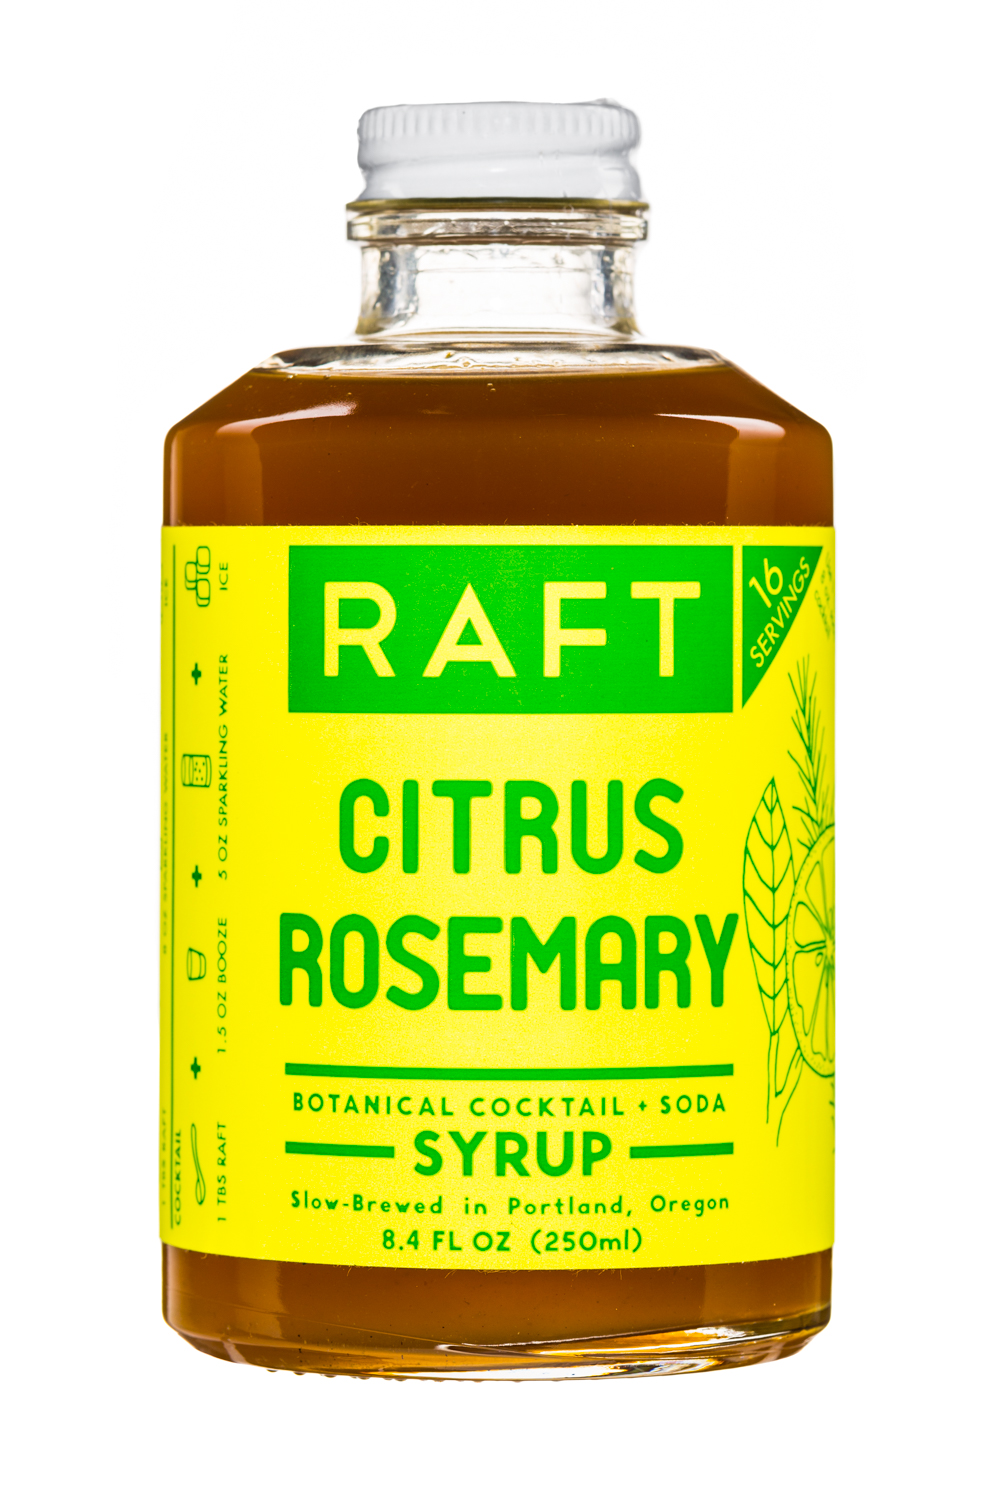 Raft-Citrus Rosemary